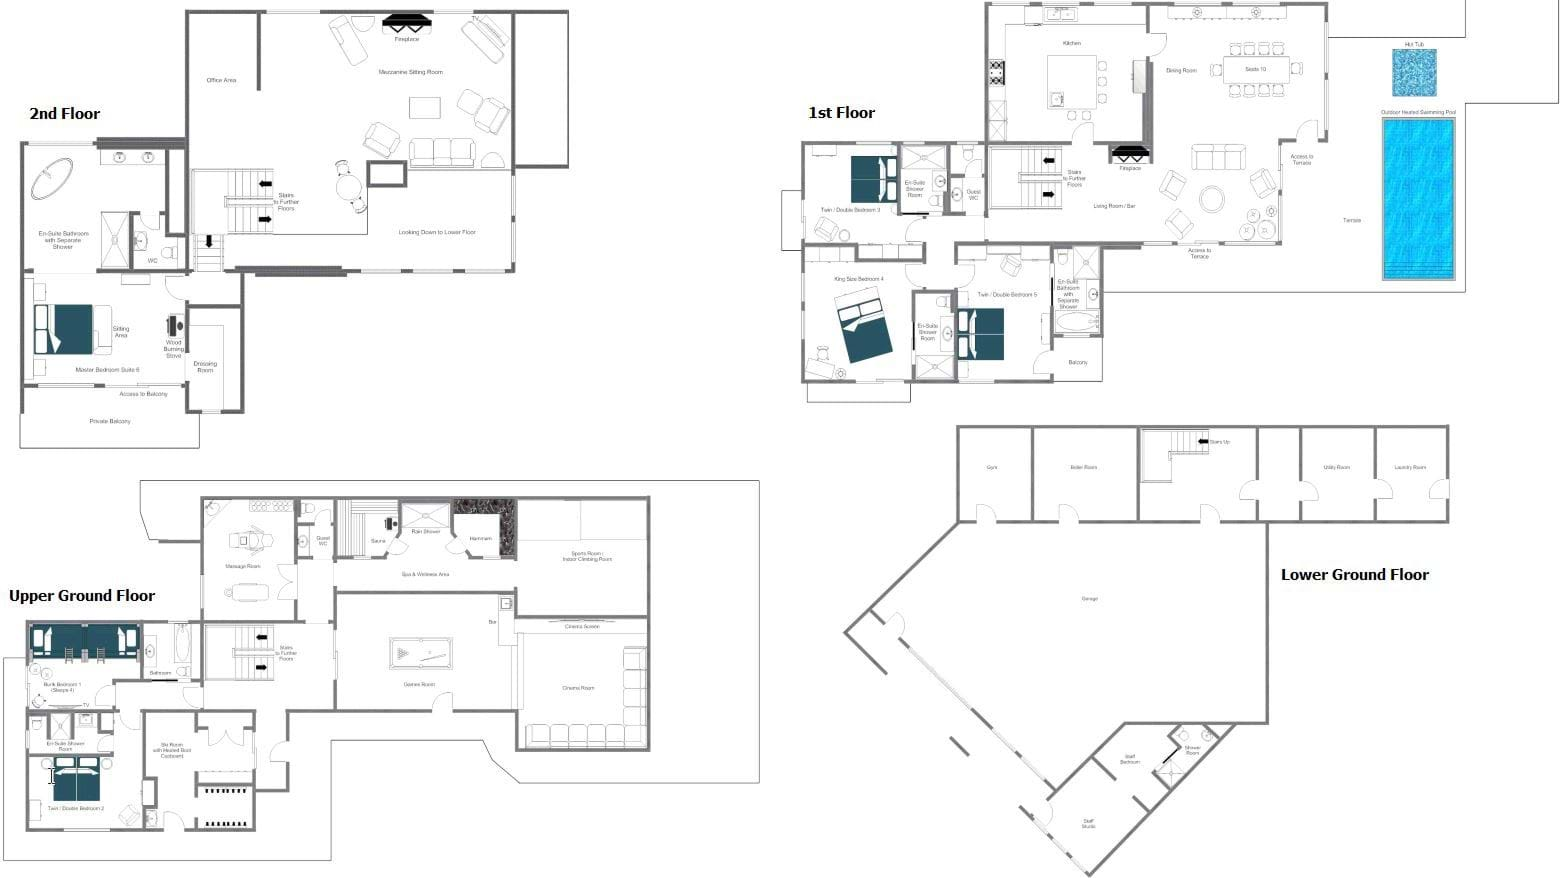 Photo Leave It To Beaver House Floor Plan Images